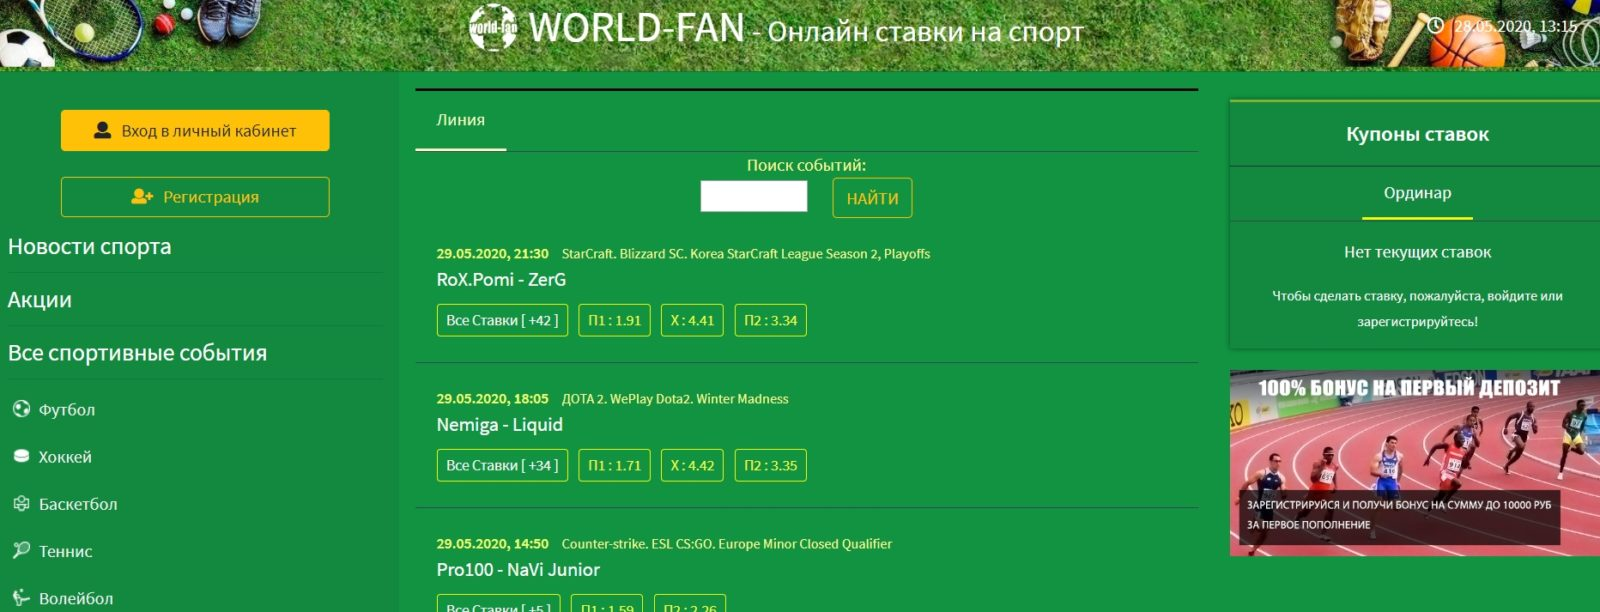 Главная страница сайта World-Fan.ru (Ворлд-Фан)